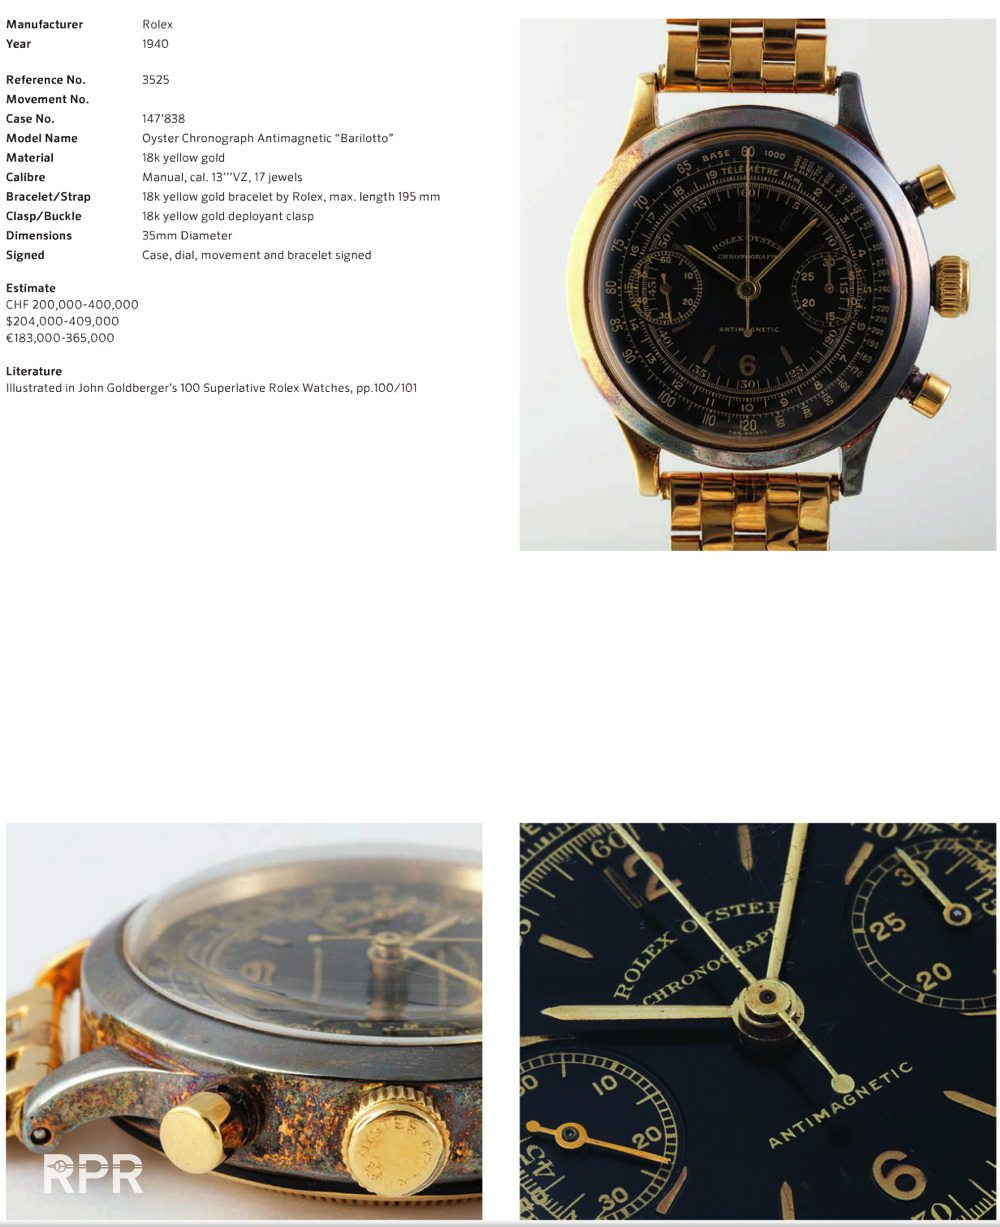 RPR_Rolex_geneva_auction_2015_31